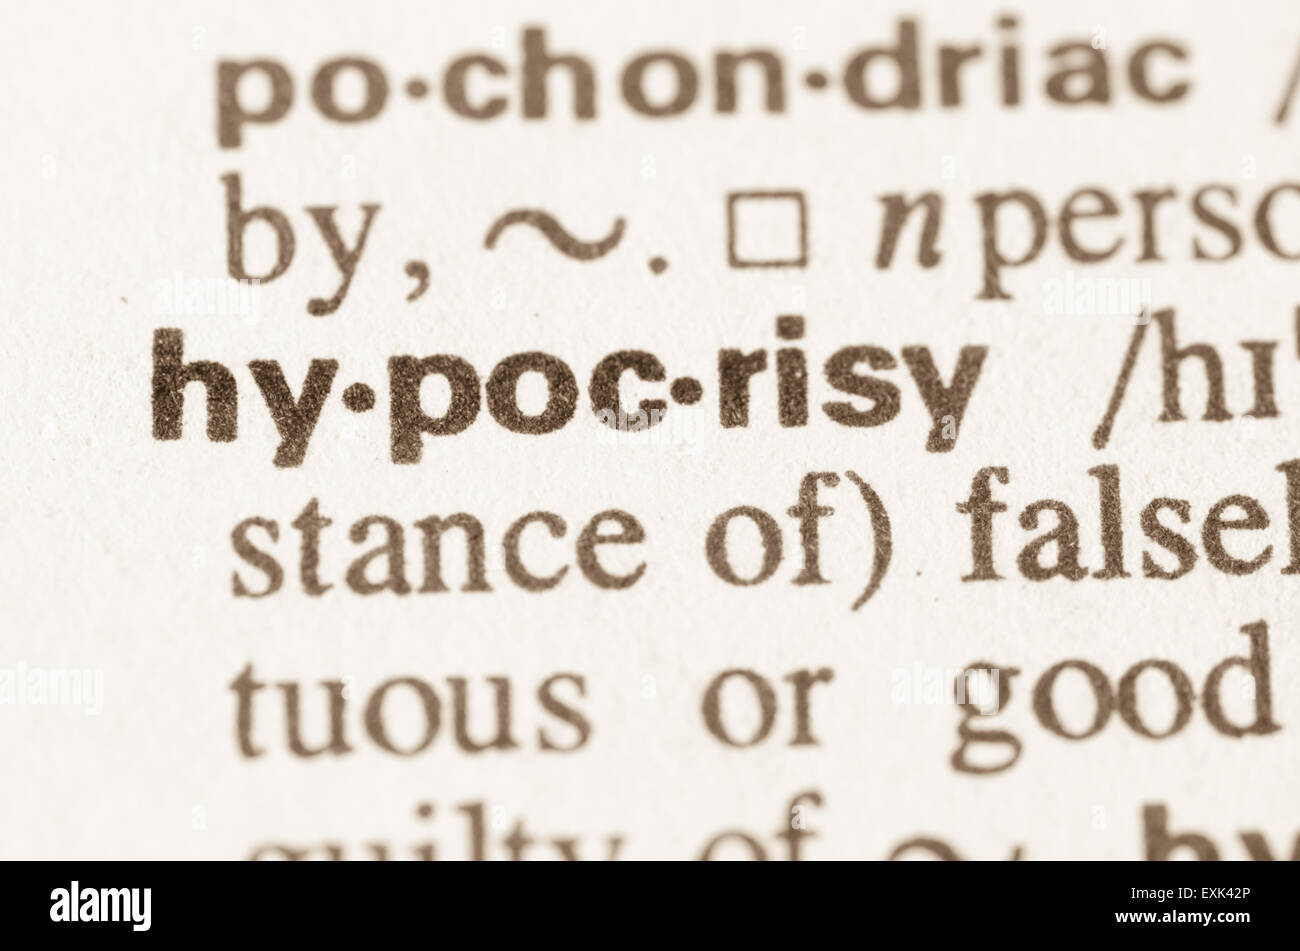 Definition of word hypocrisy in dictionary Stock Photo ...